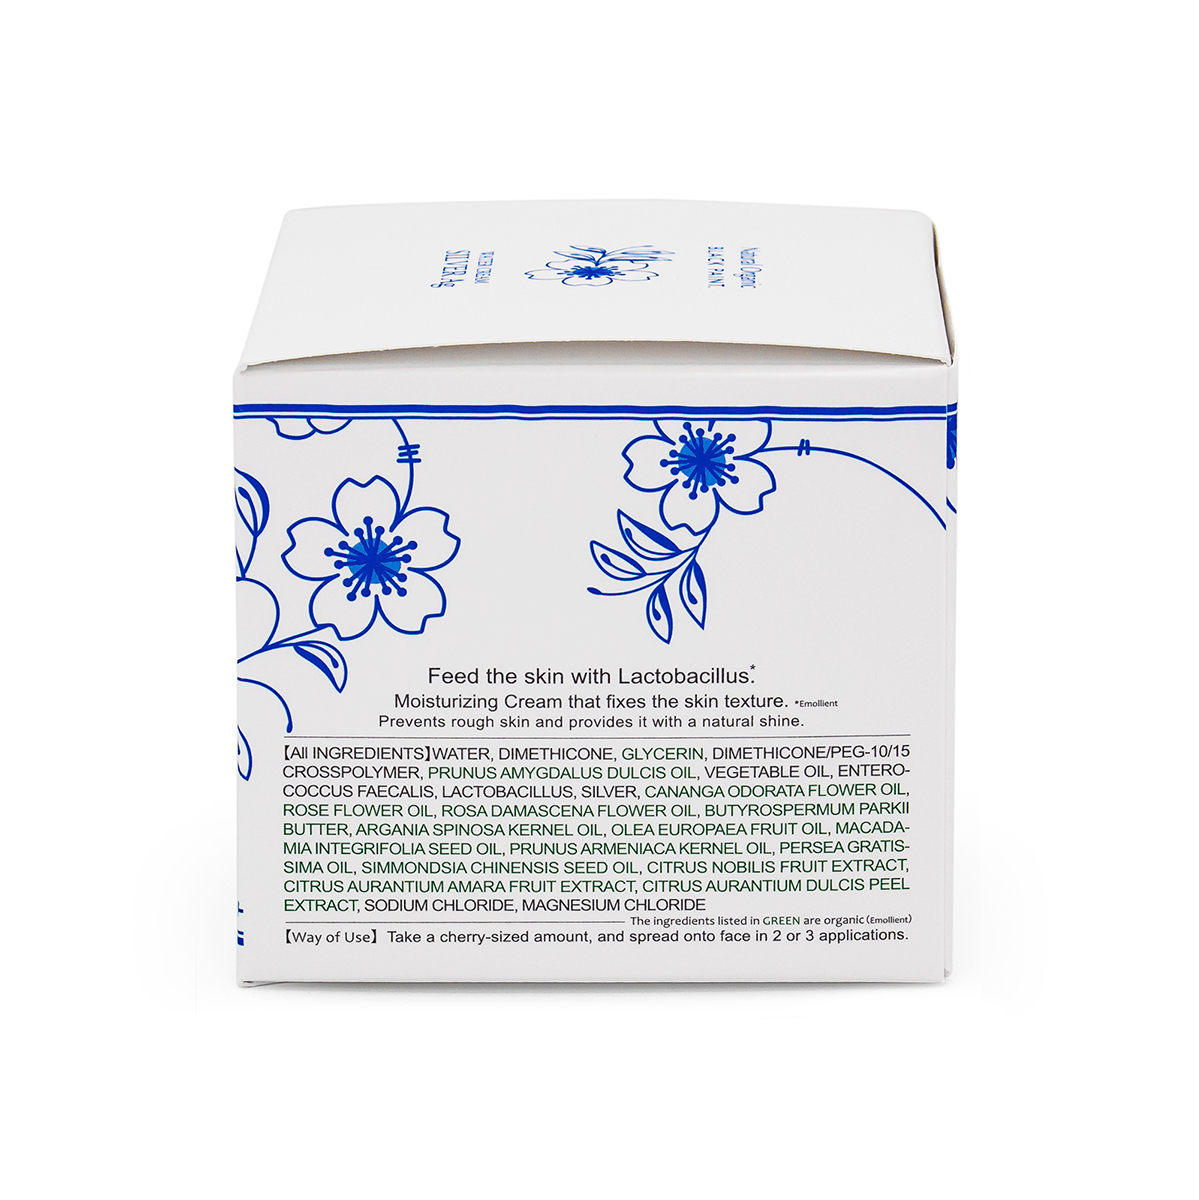 Water Cream Silver 100g with Human Microbiome - box side 1